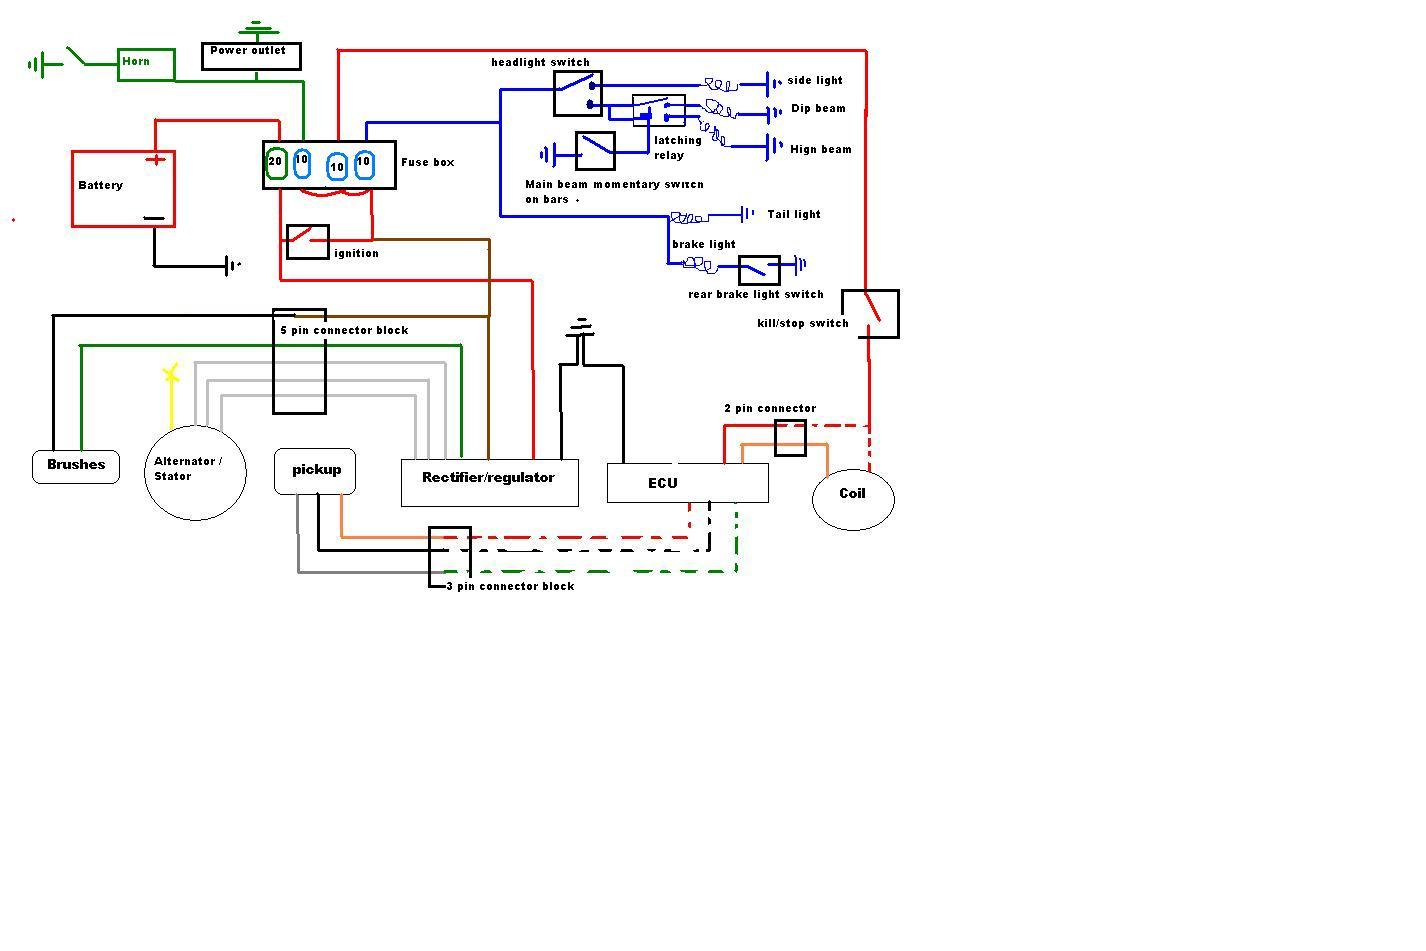 xt350 wiring diagram wiring library